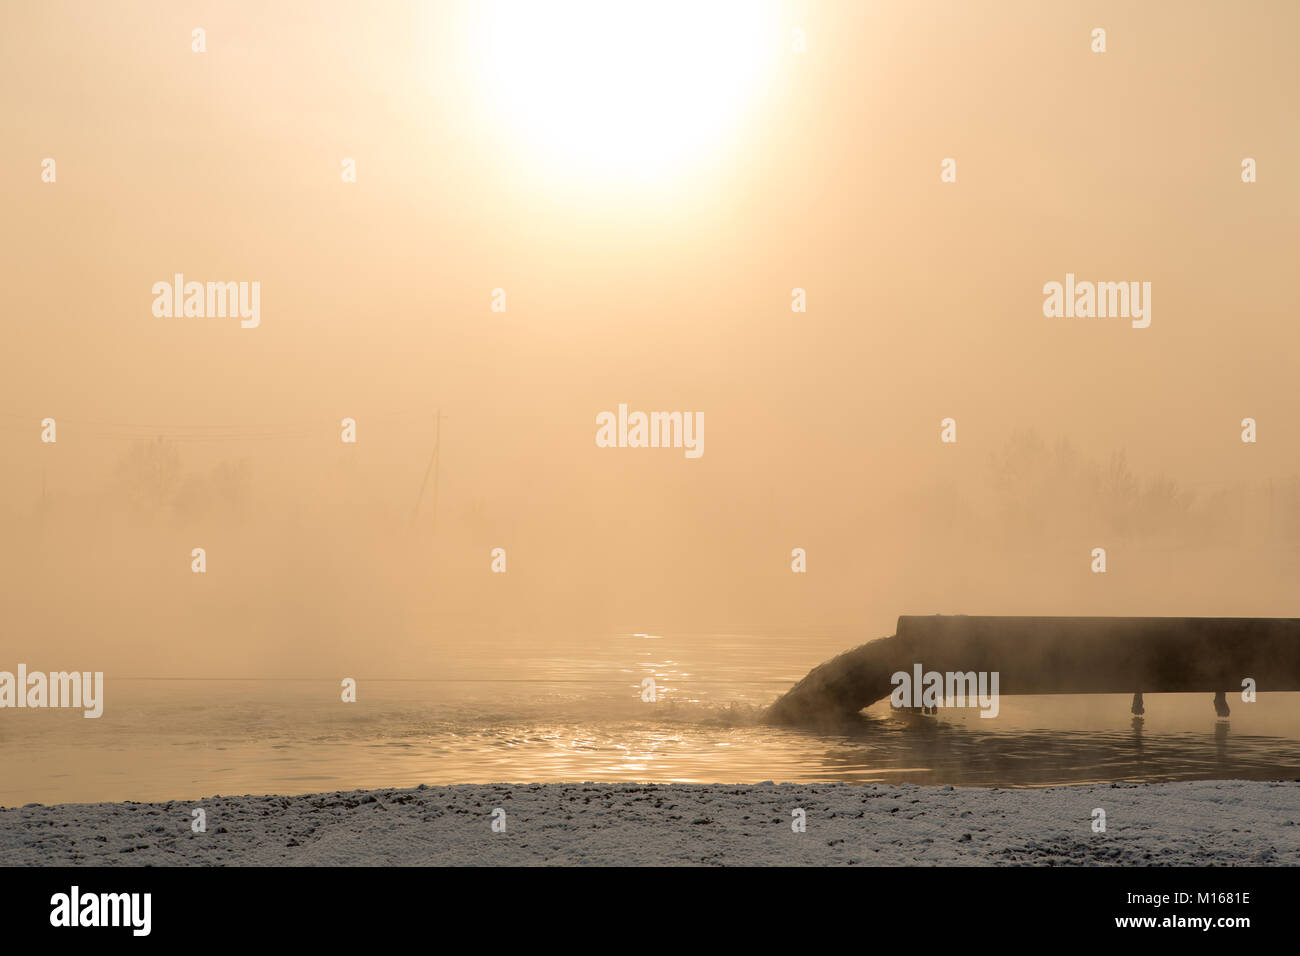 Dirty water discharged into the river, pollution - Stock Image